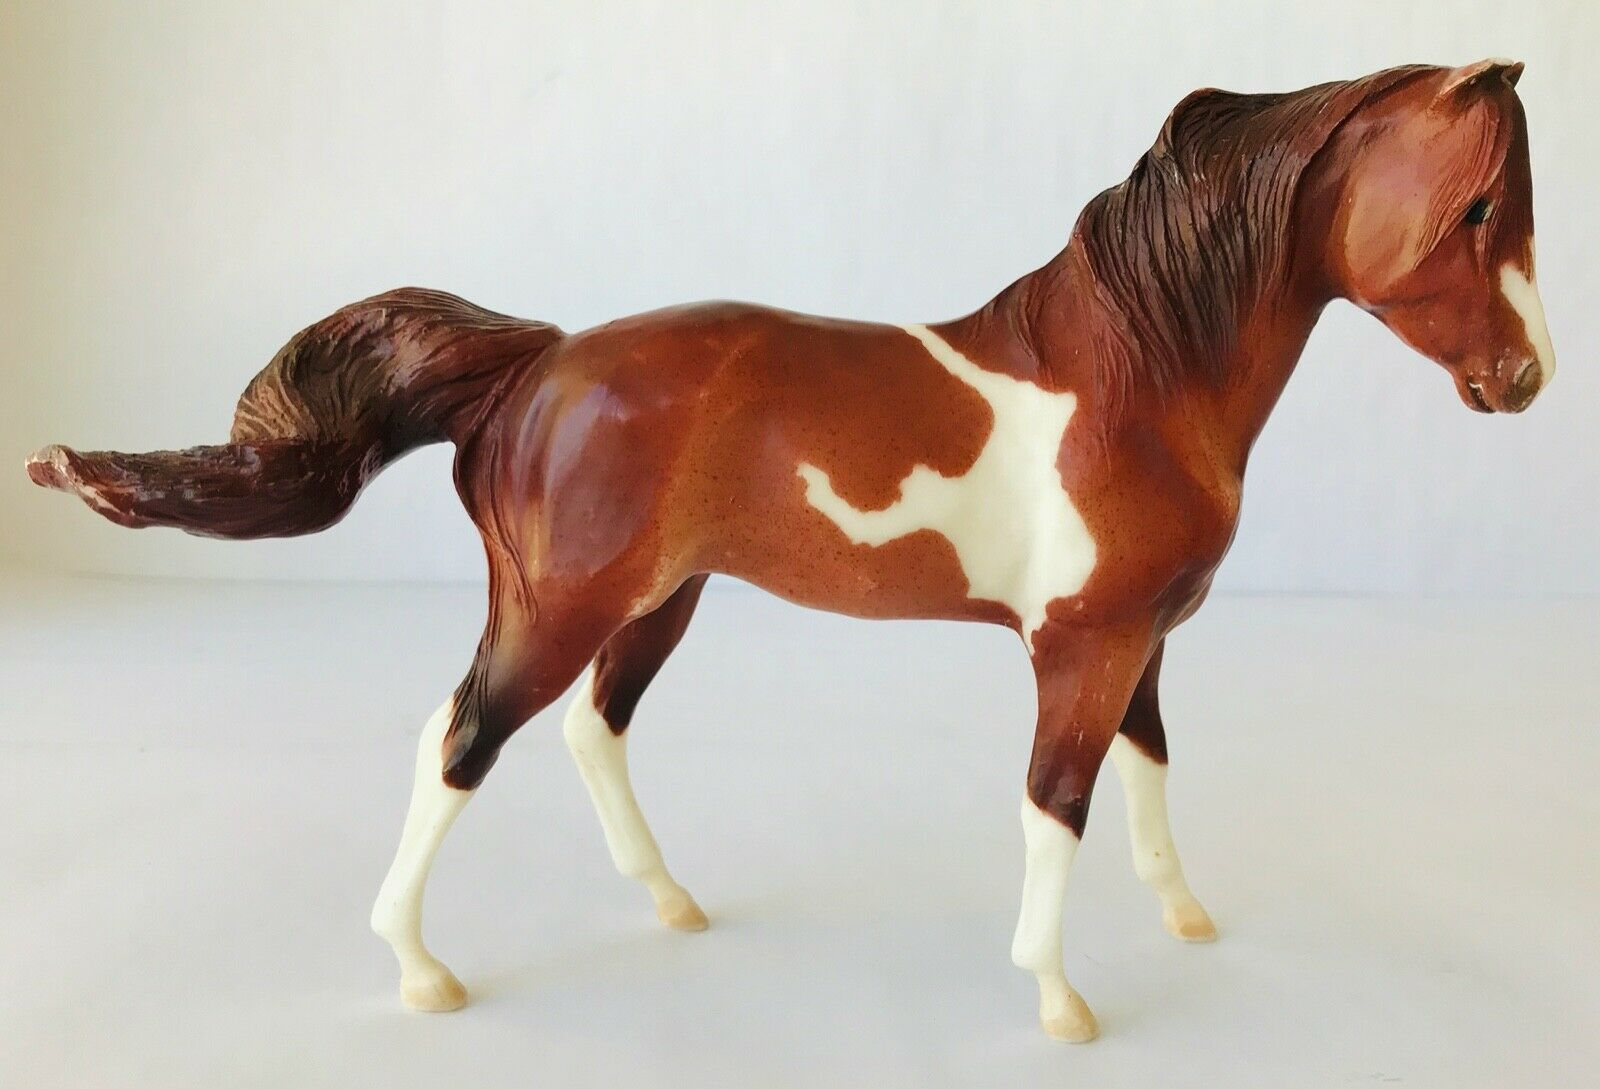 Primary image for Breyer Classic Horse 750135 Redbird Pinto Mare Red Roan Tovero 2005